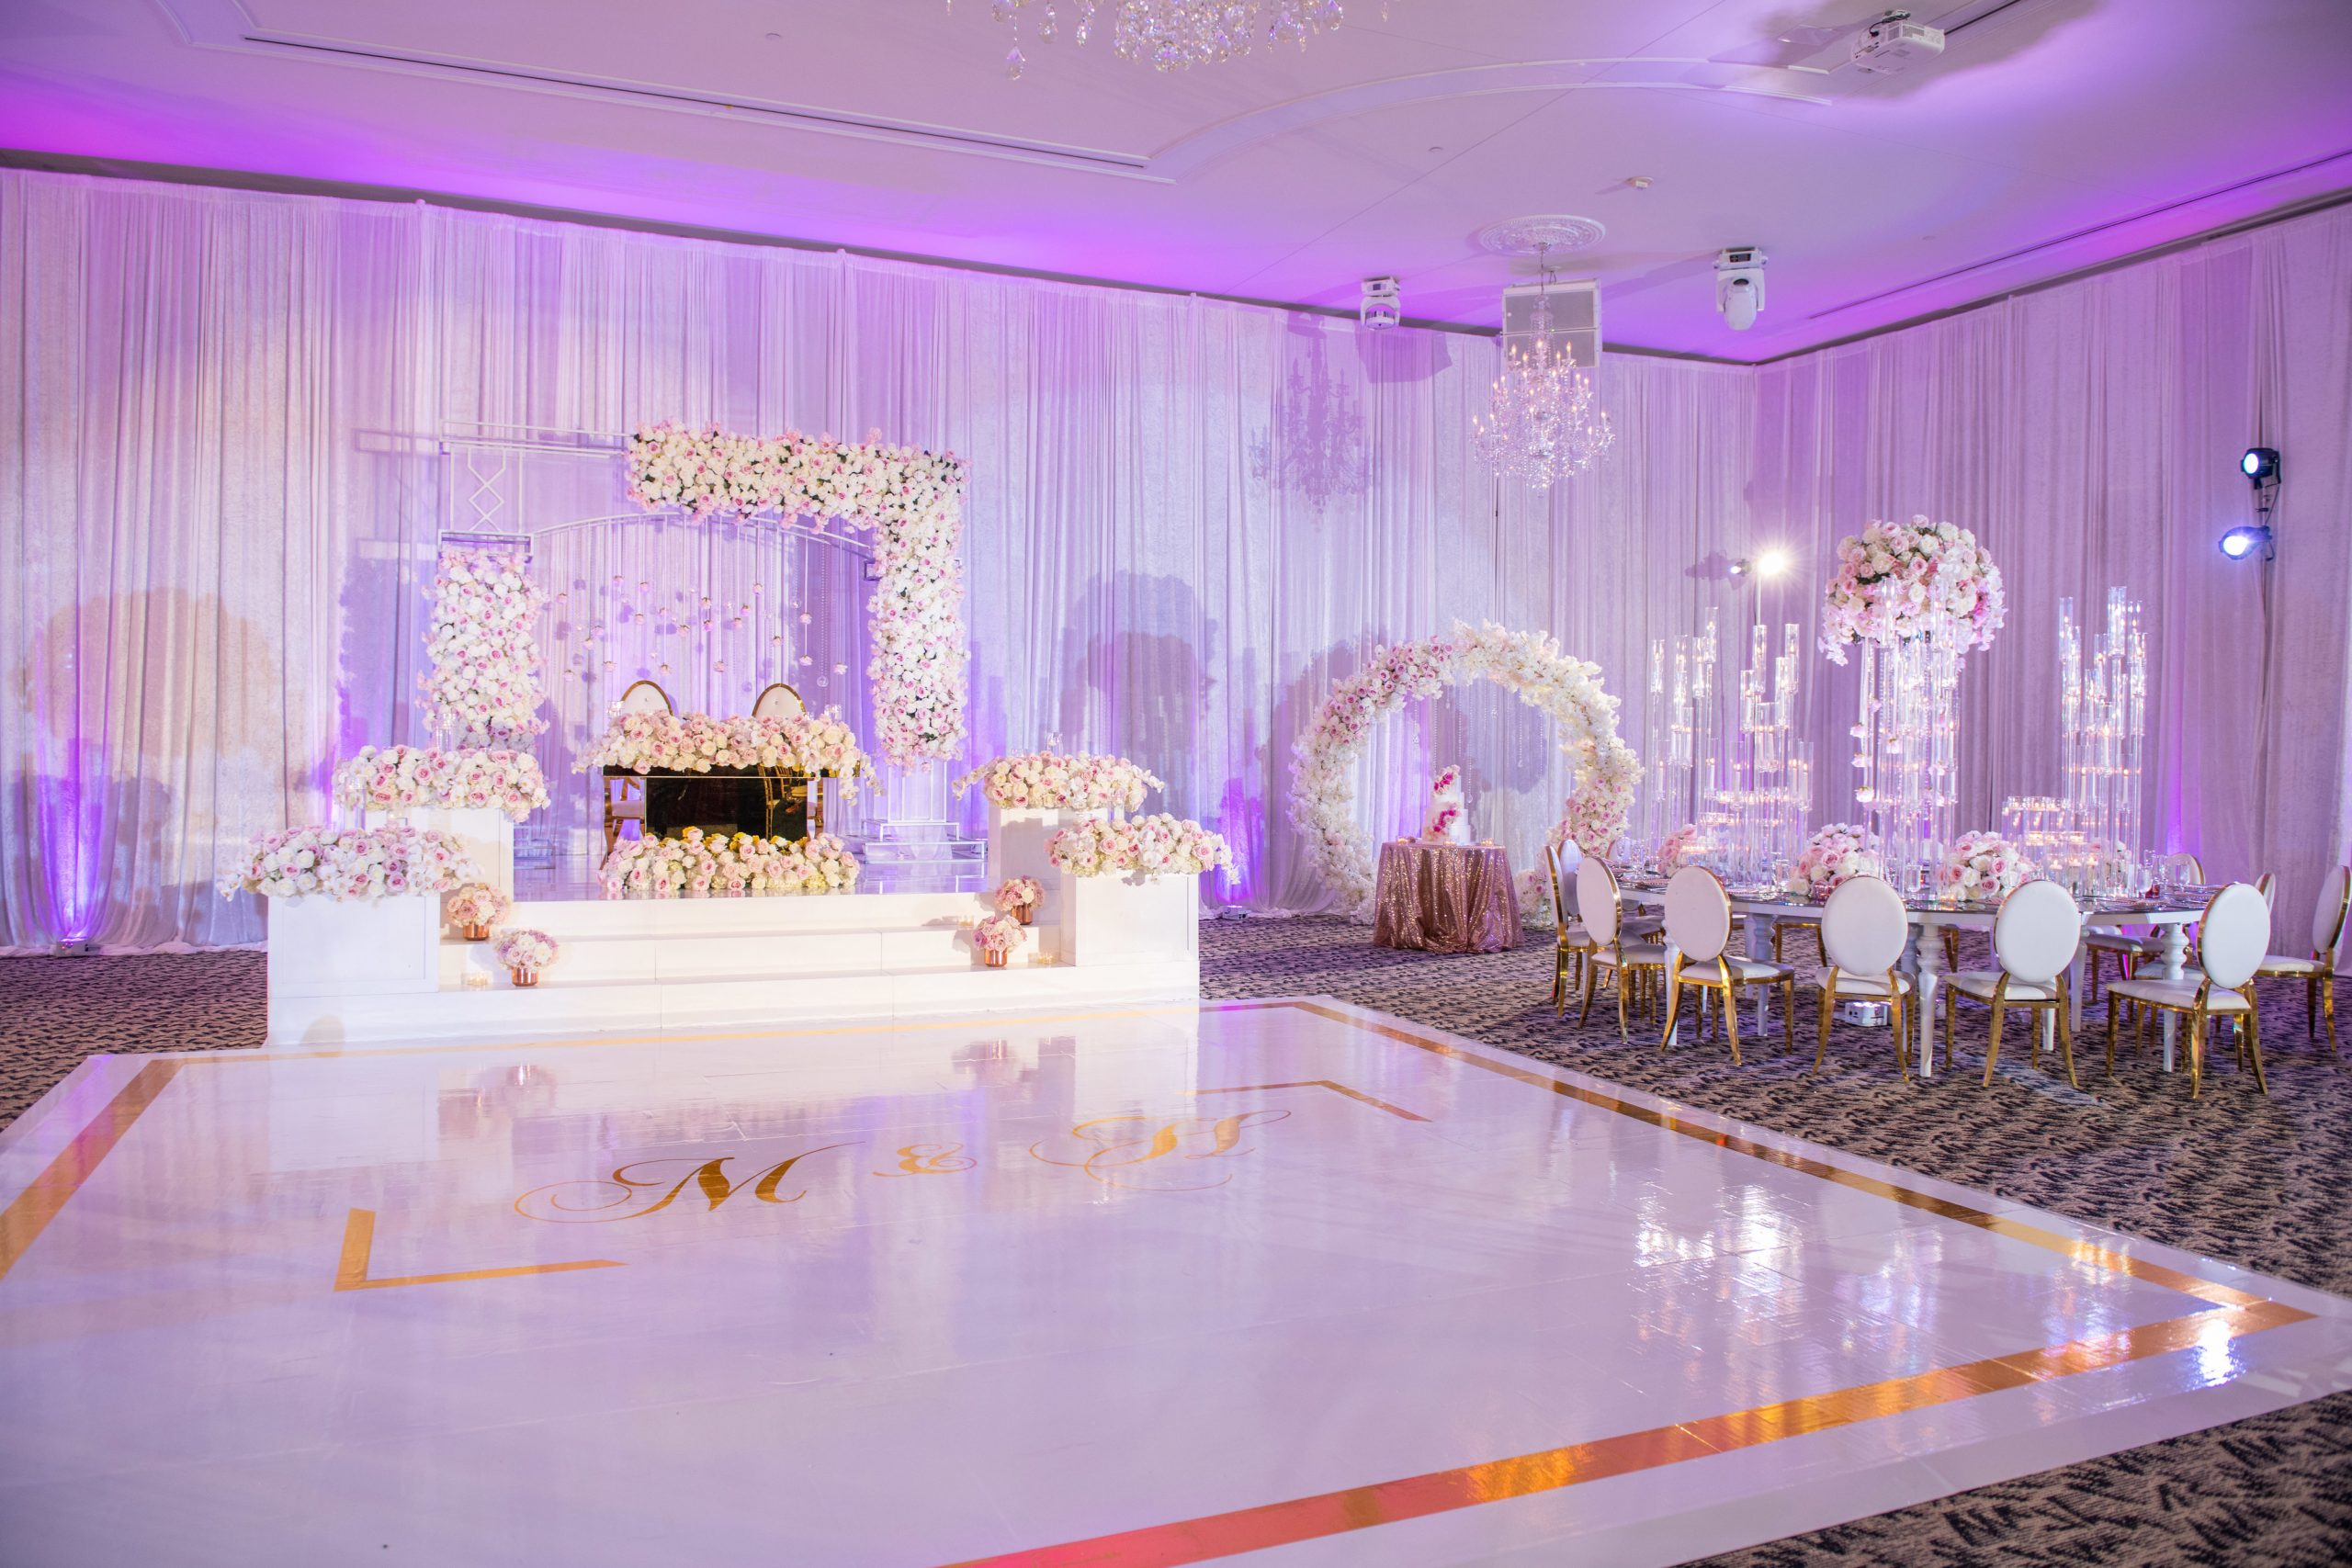 Custom Dance Floor Wraps in New York Jersey Delaware DC Maryland | Lighting and Event Production Company